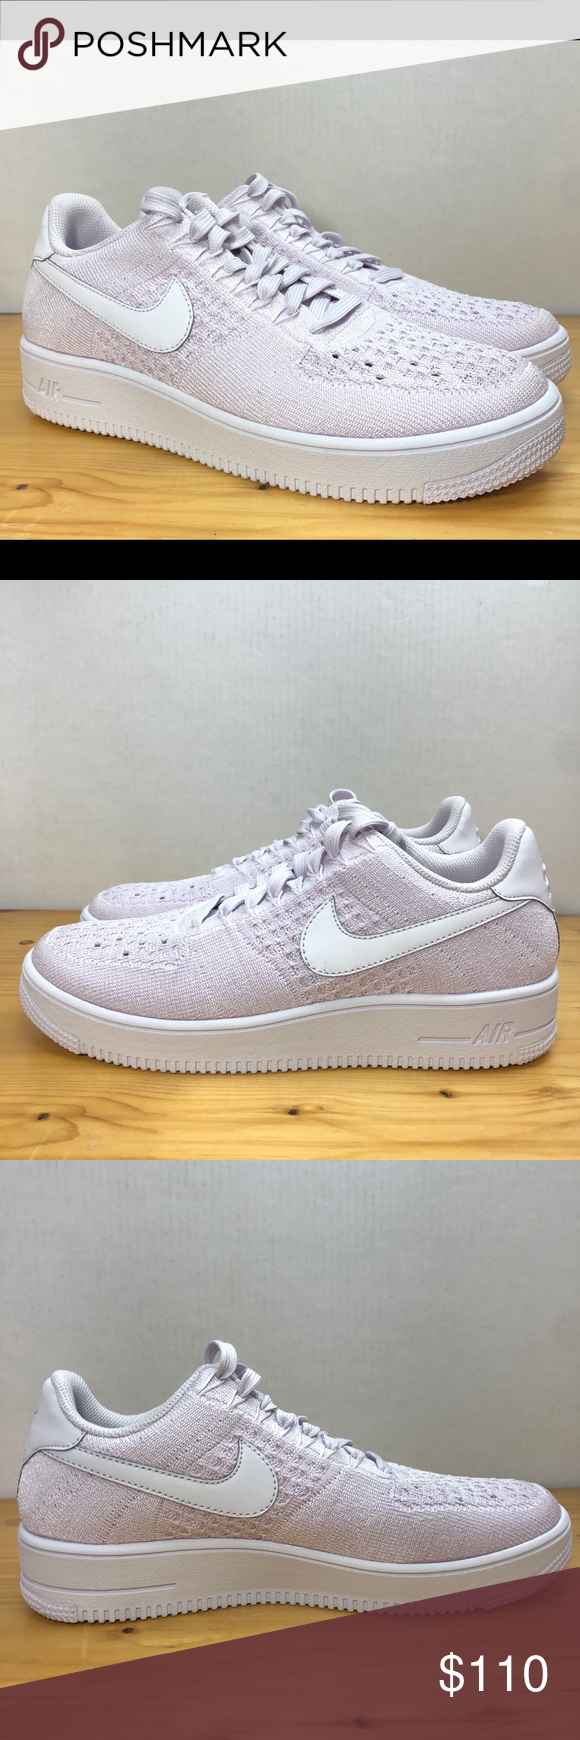 f609bf64c9de2 Nike Air Force 1 Ultra Flyknit Light Violet Size 8 Nike Air Force 1 Ultra  Flyknit